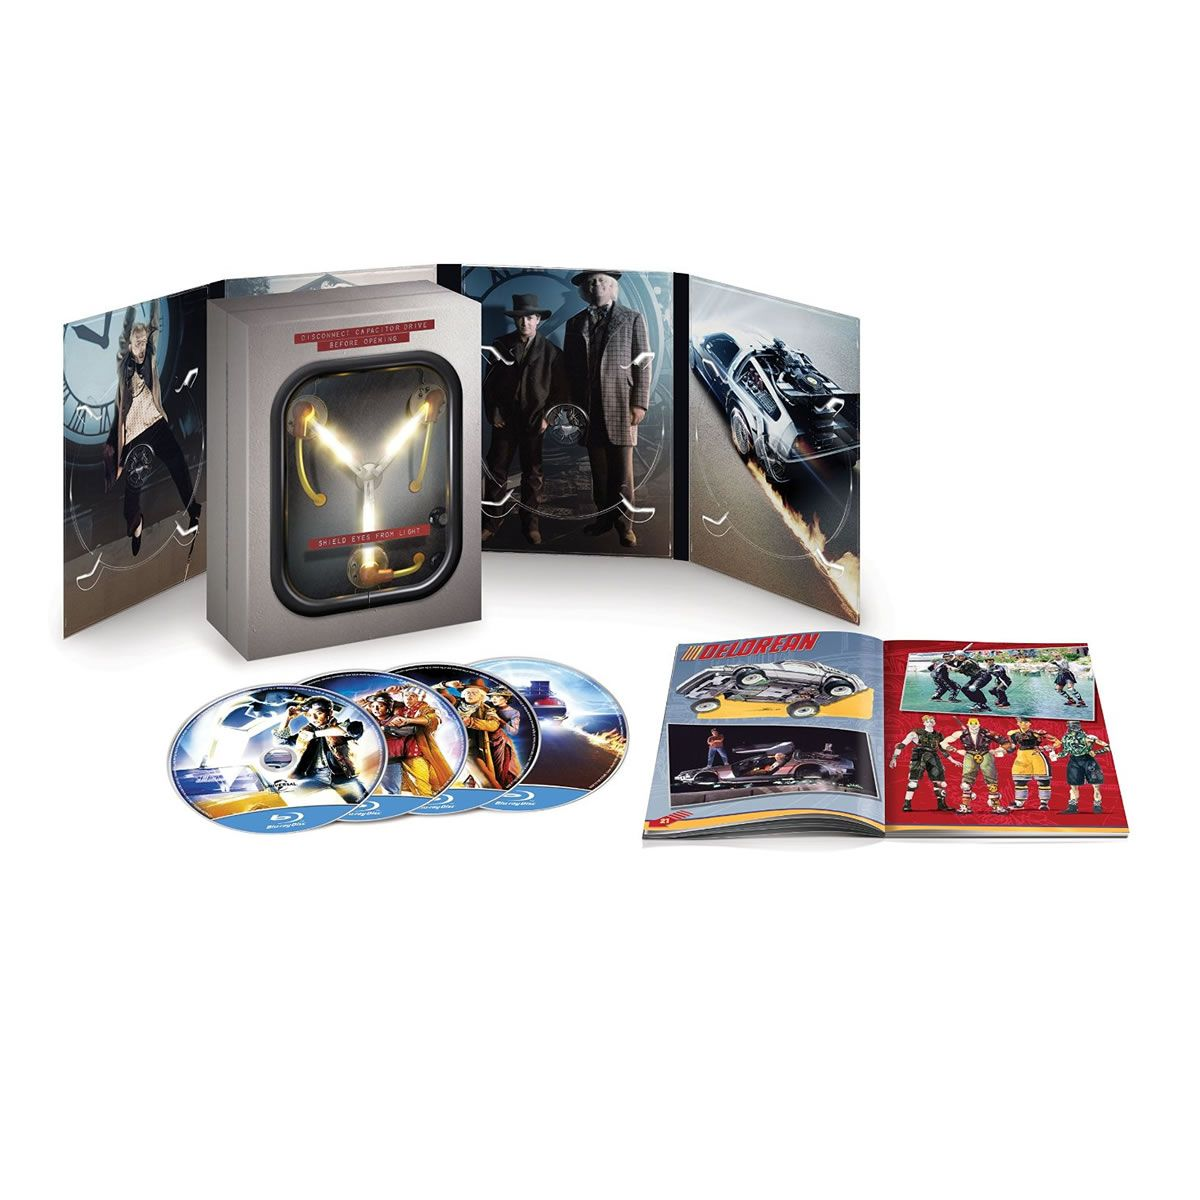 BACK TO THE FUTURE Trilogy 30th ANNIVERSARY Flux Capacitor Limited